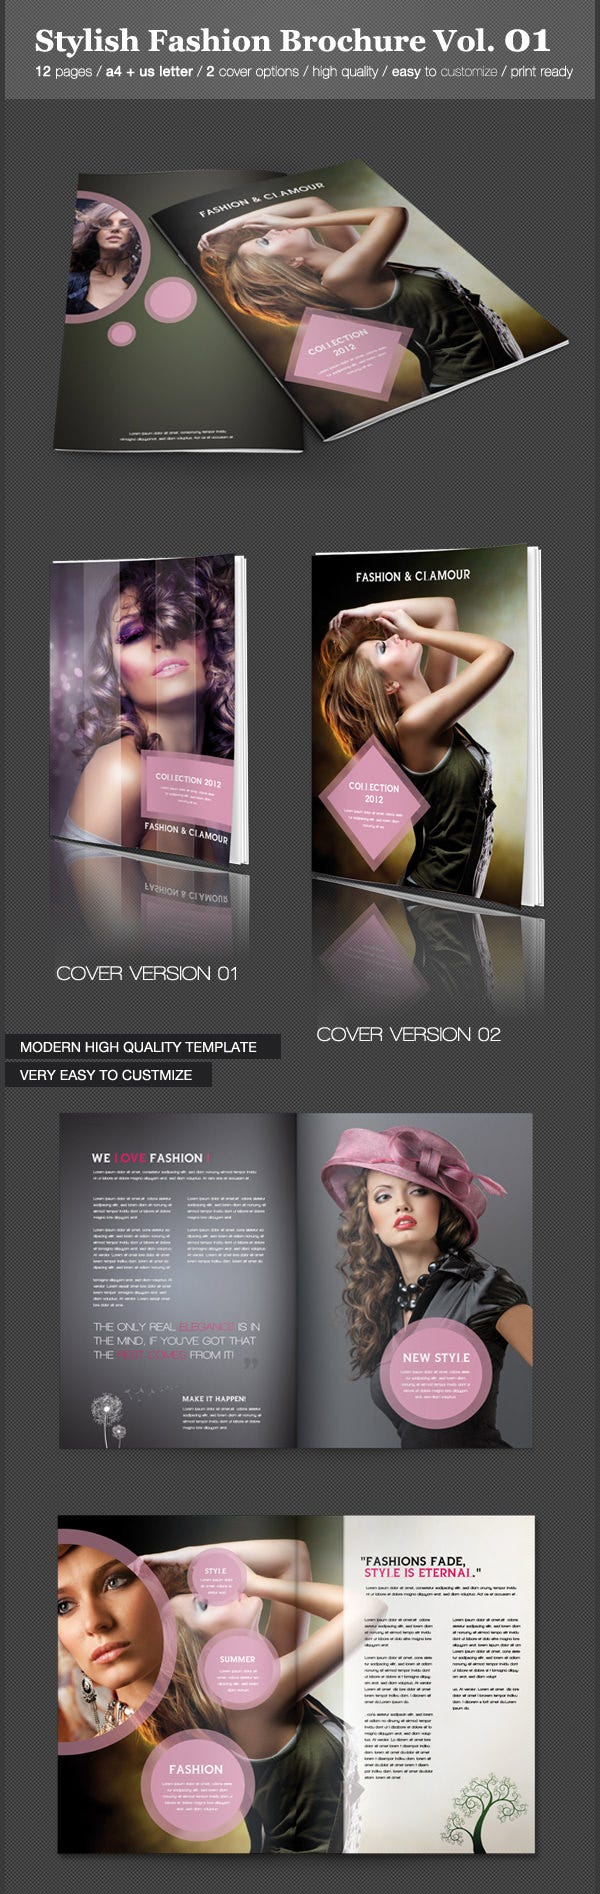 stylish fashion brochure vol01